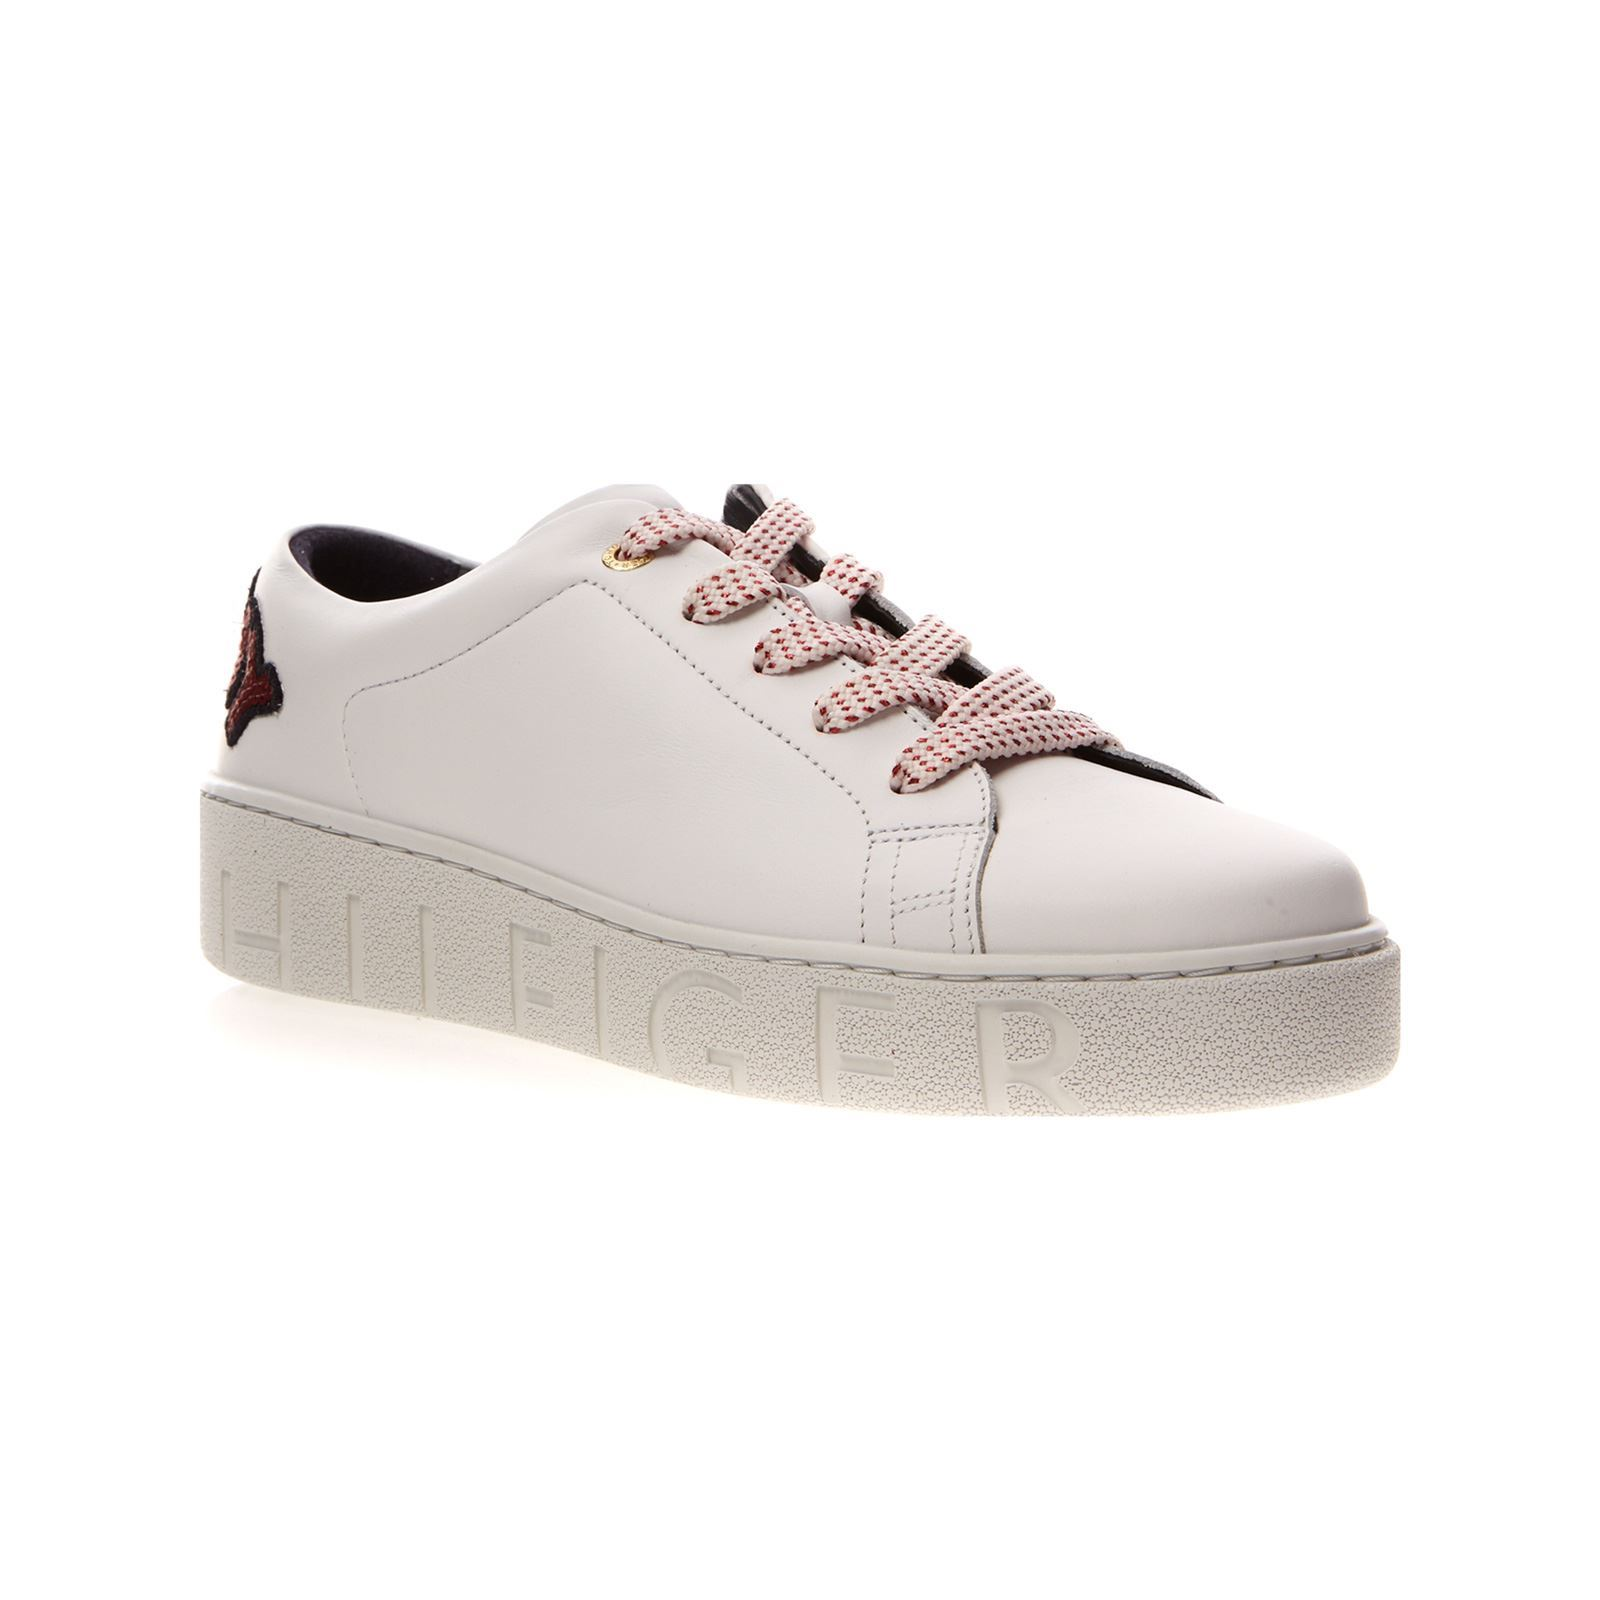 new product 0a404 56101 Turnschuhe, Sneakers - weiß